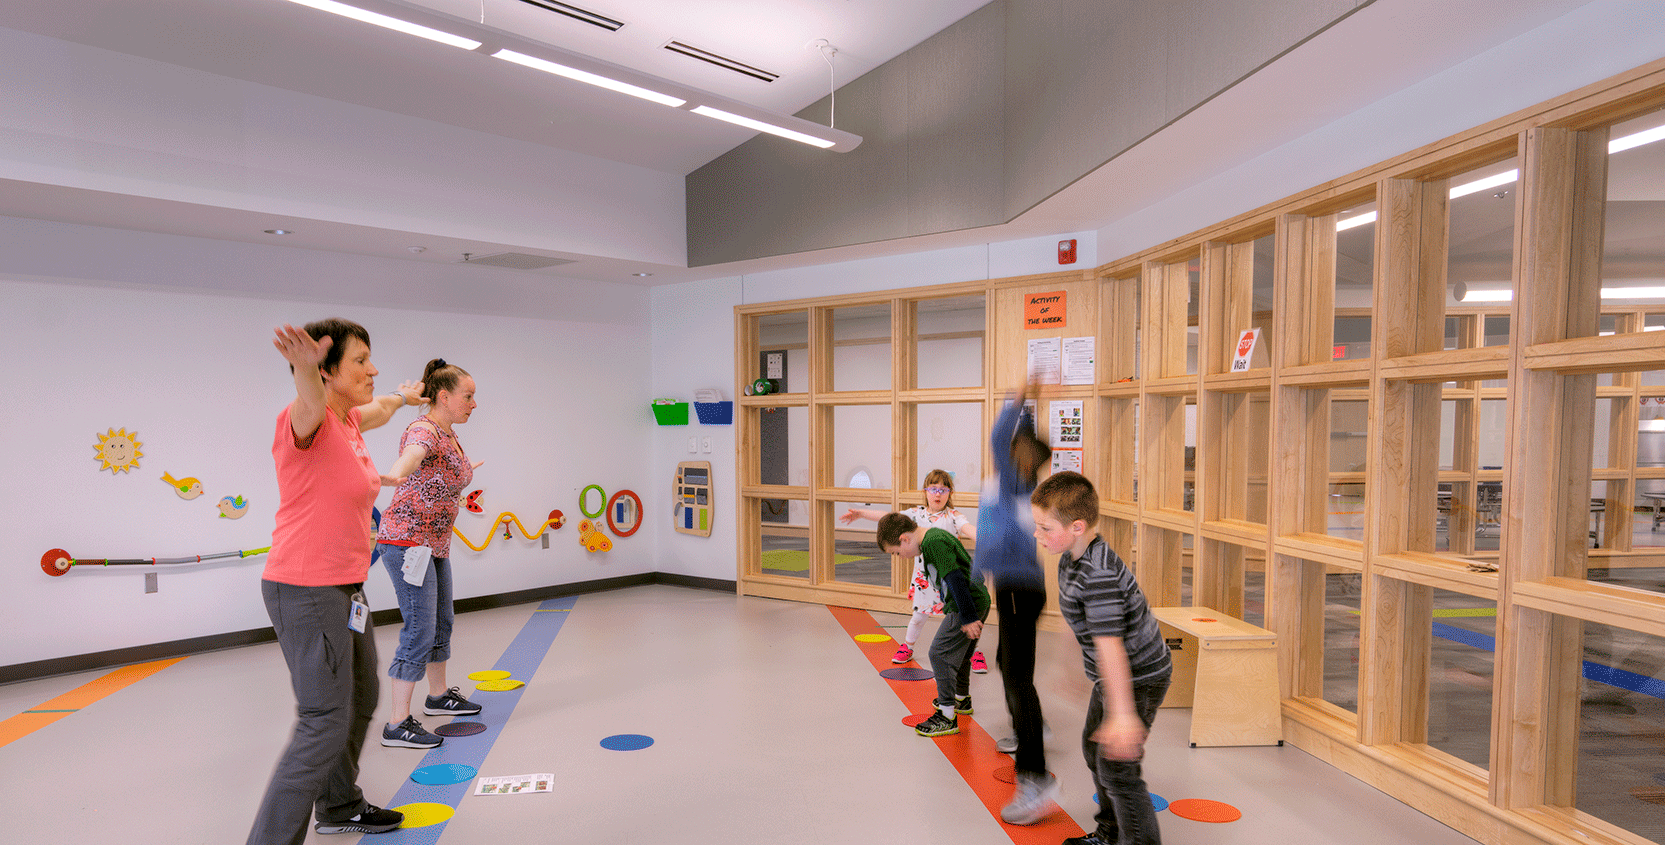 PHASD-Early-Childhood-Education-Center-Exercise_1665x845